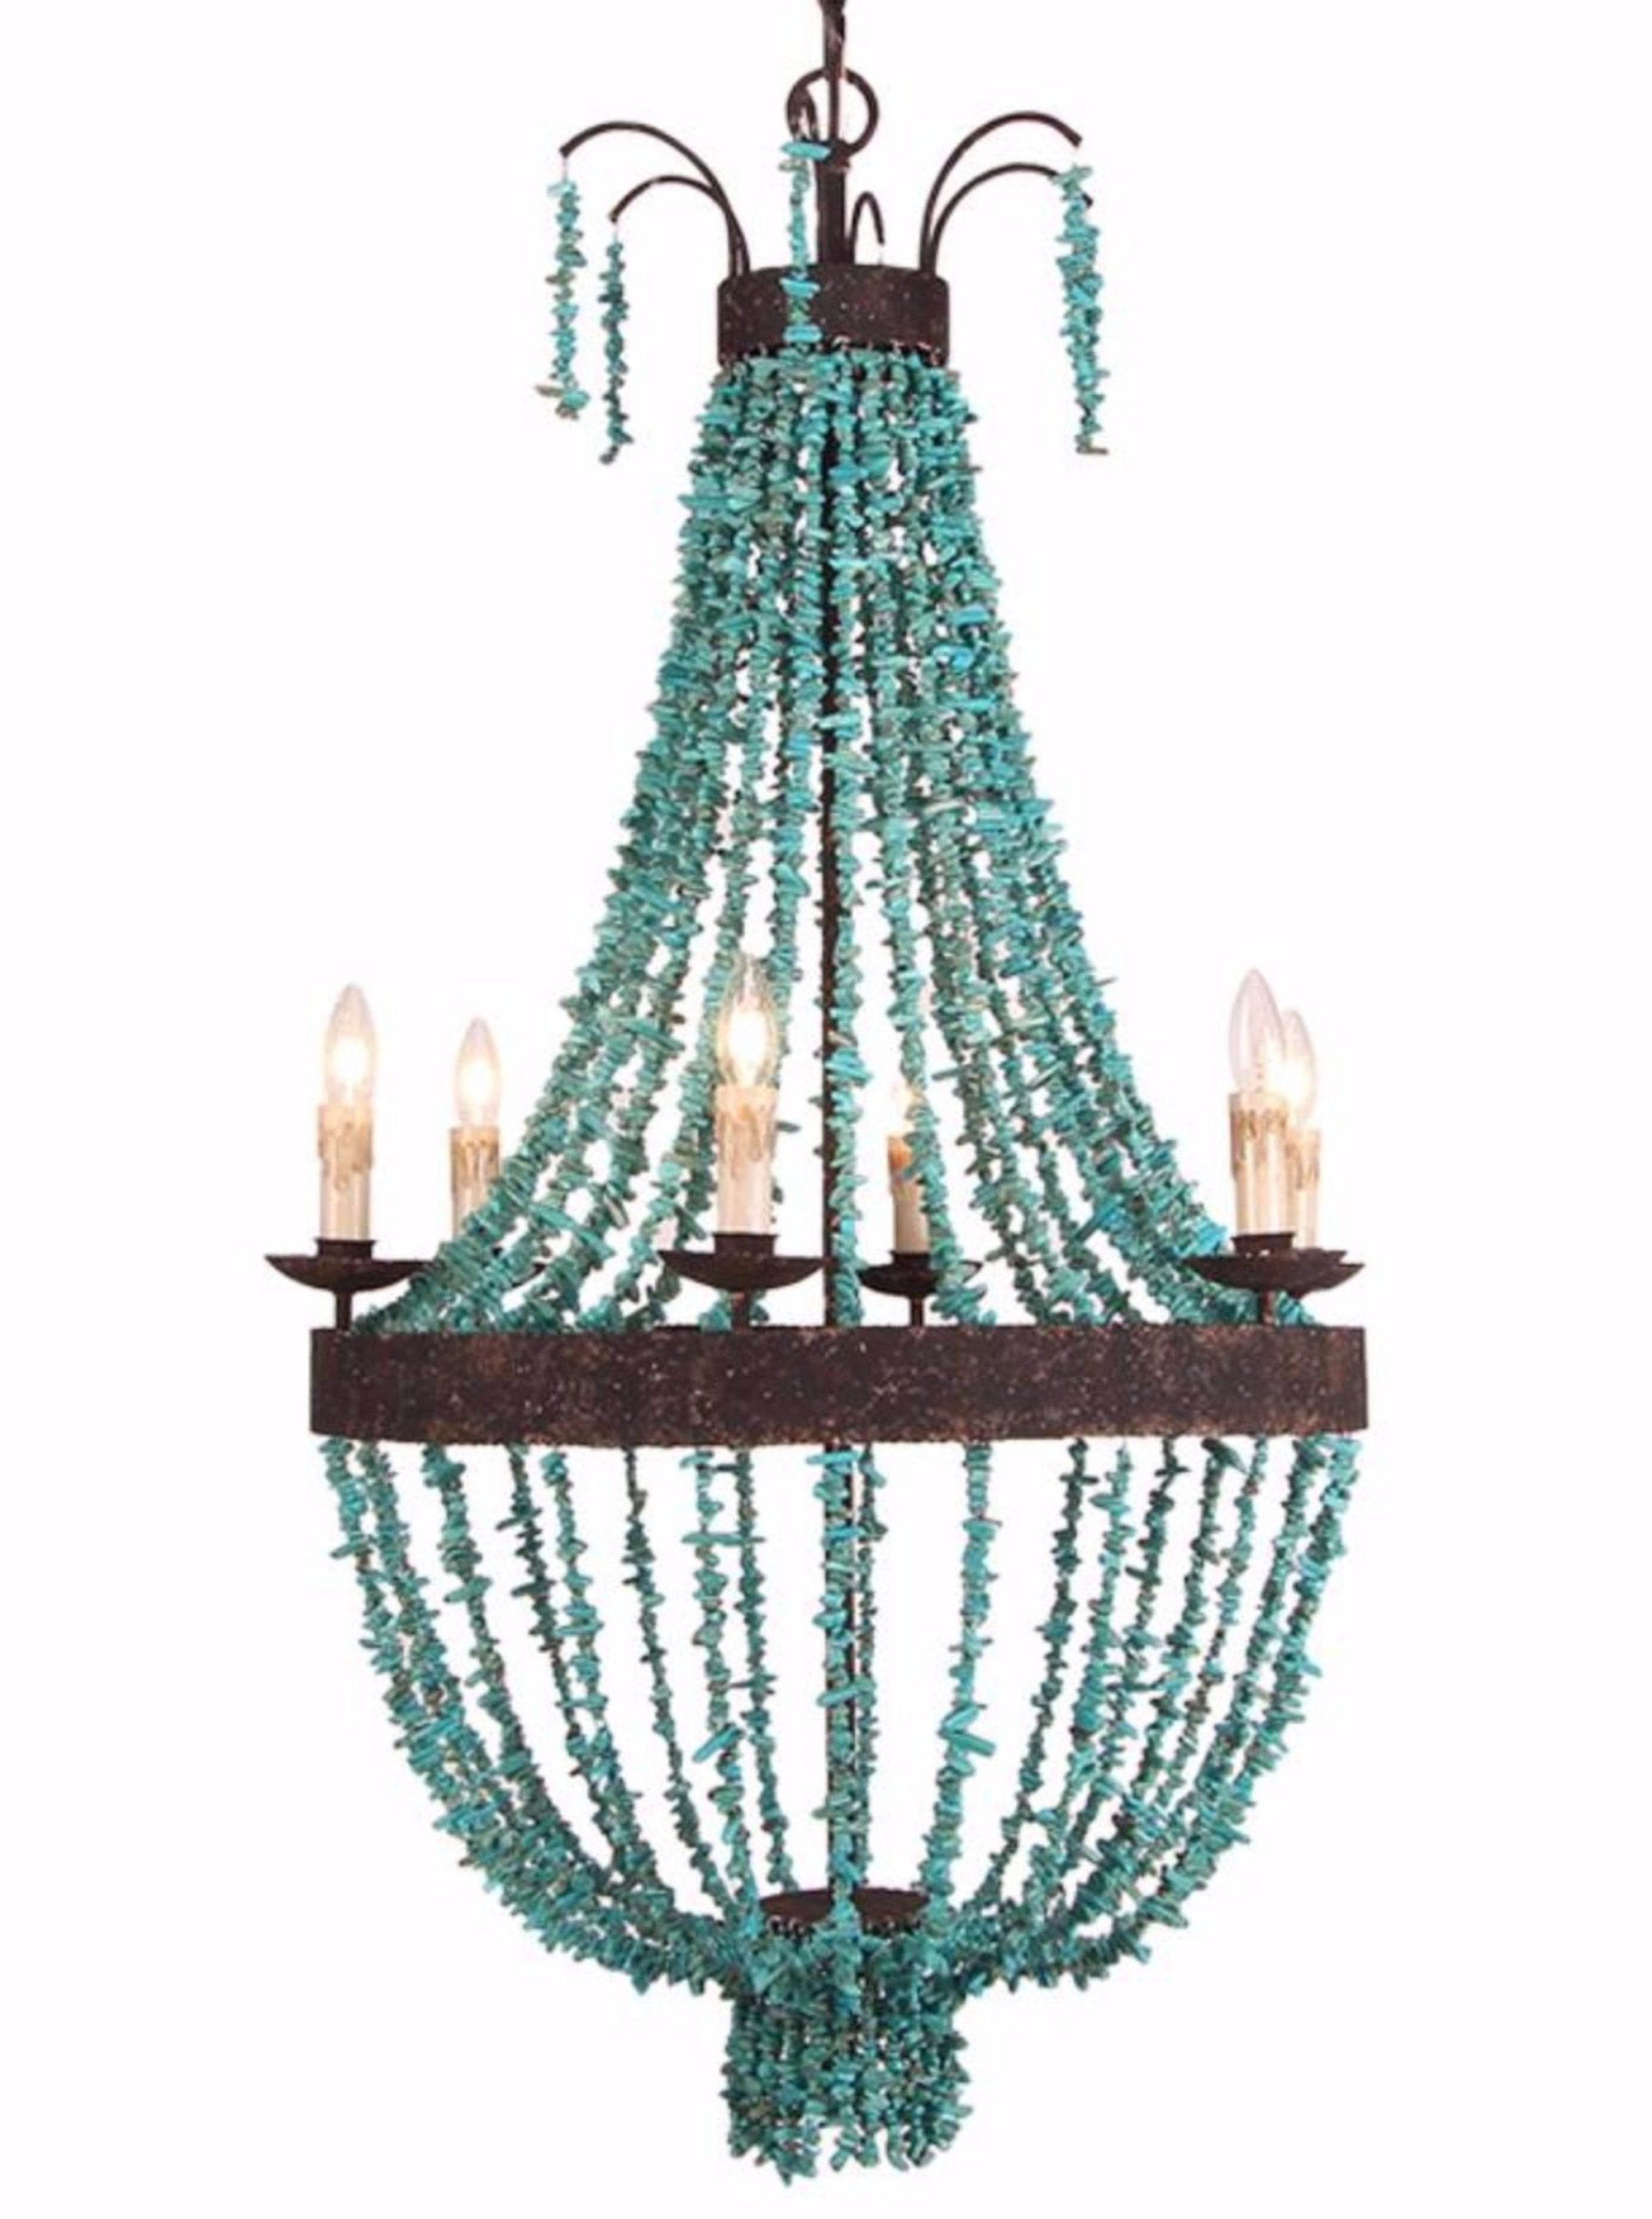 Taillefer Turquoise Chip Beaded Empire Chandelier